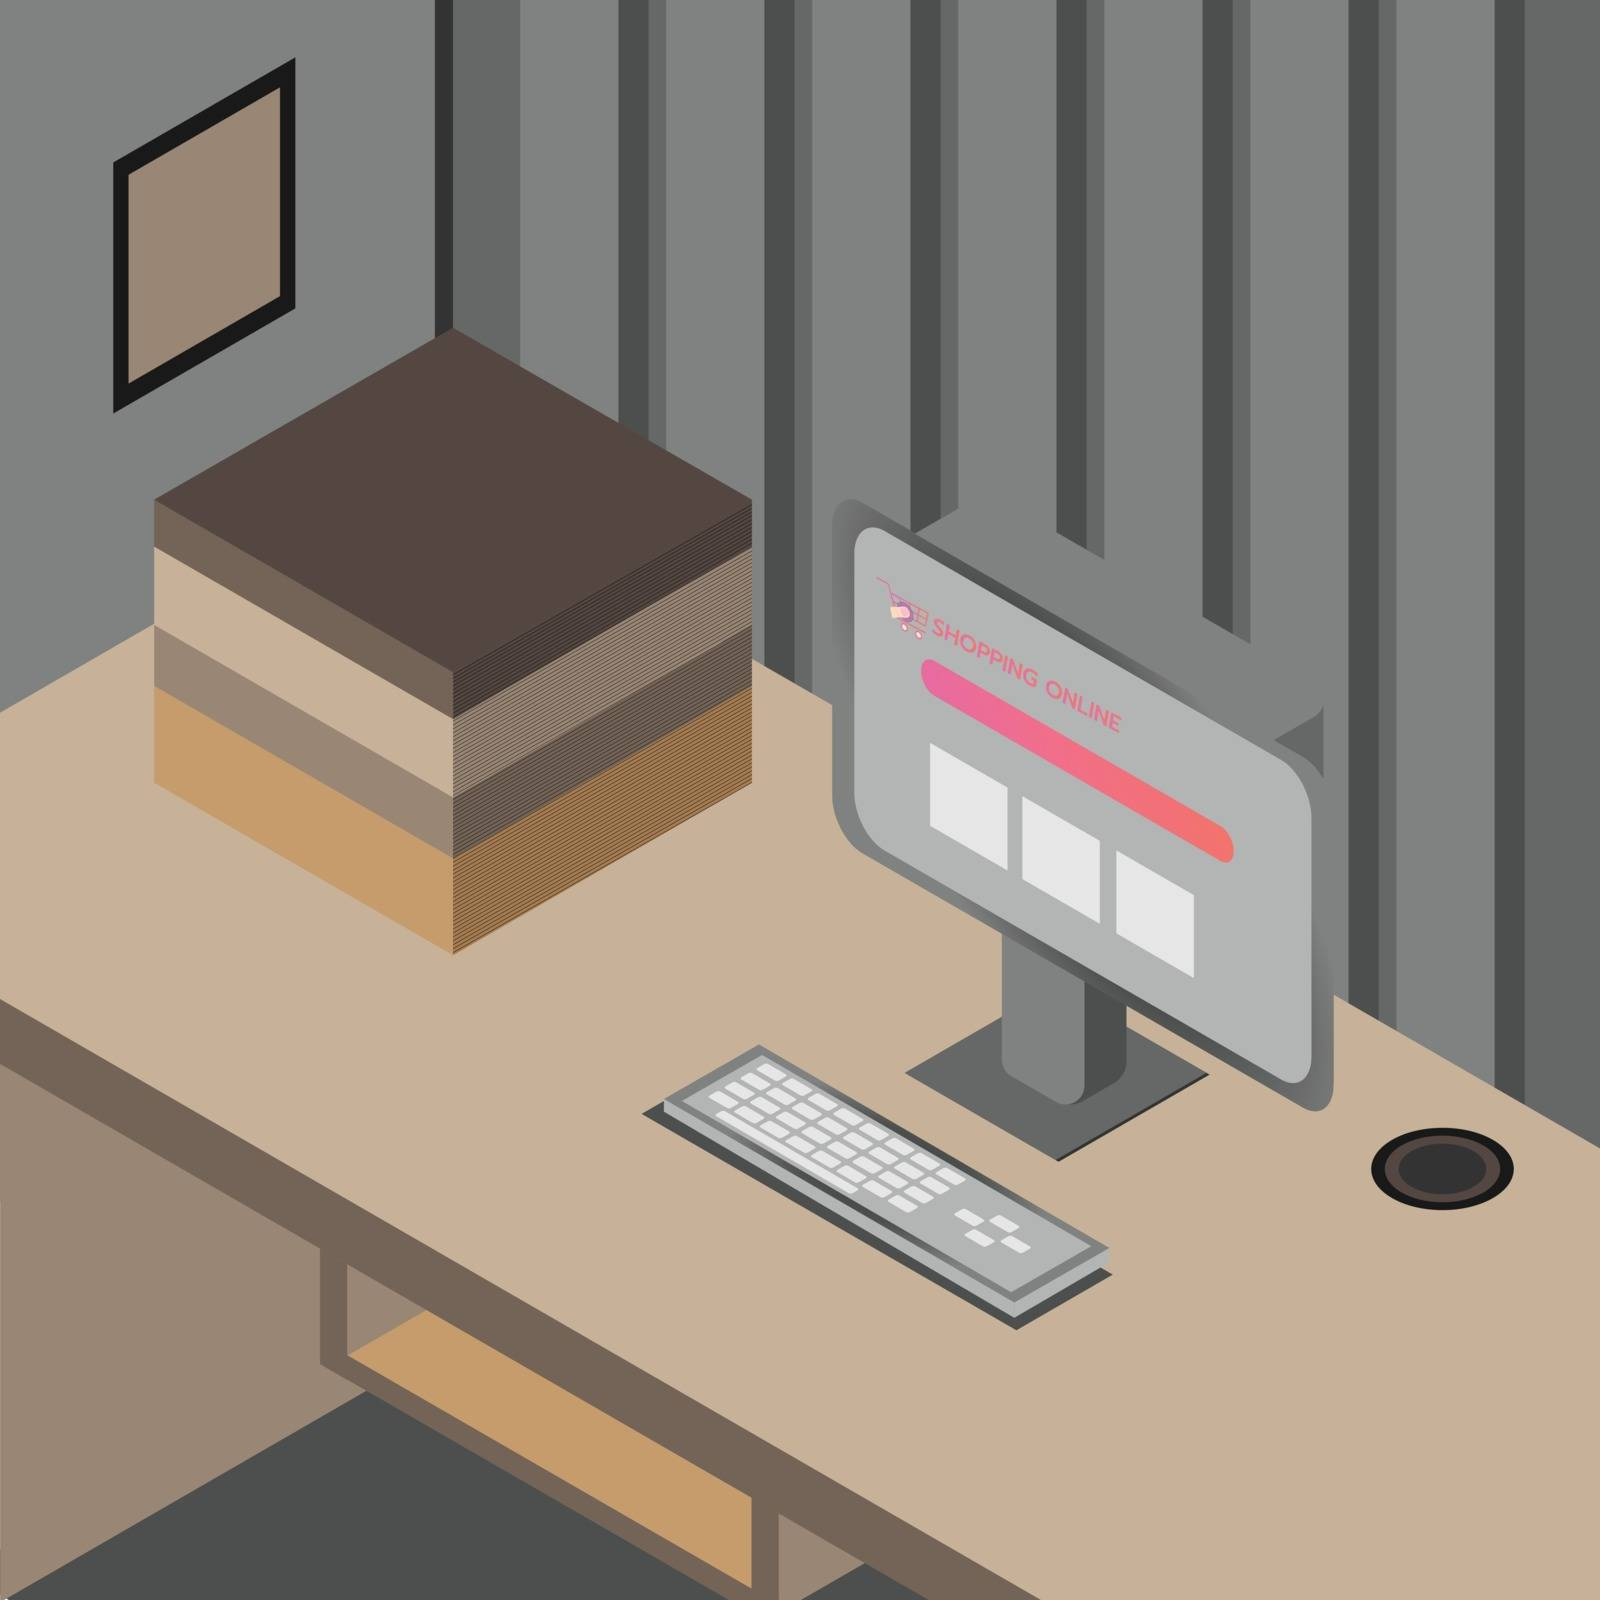 Art & Illustration about desk for office room or workspace with computer and some book